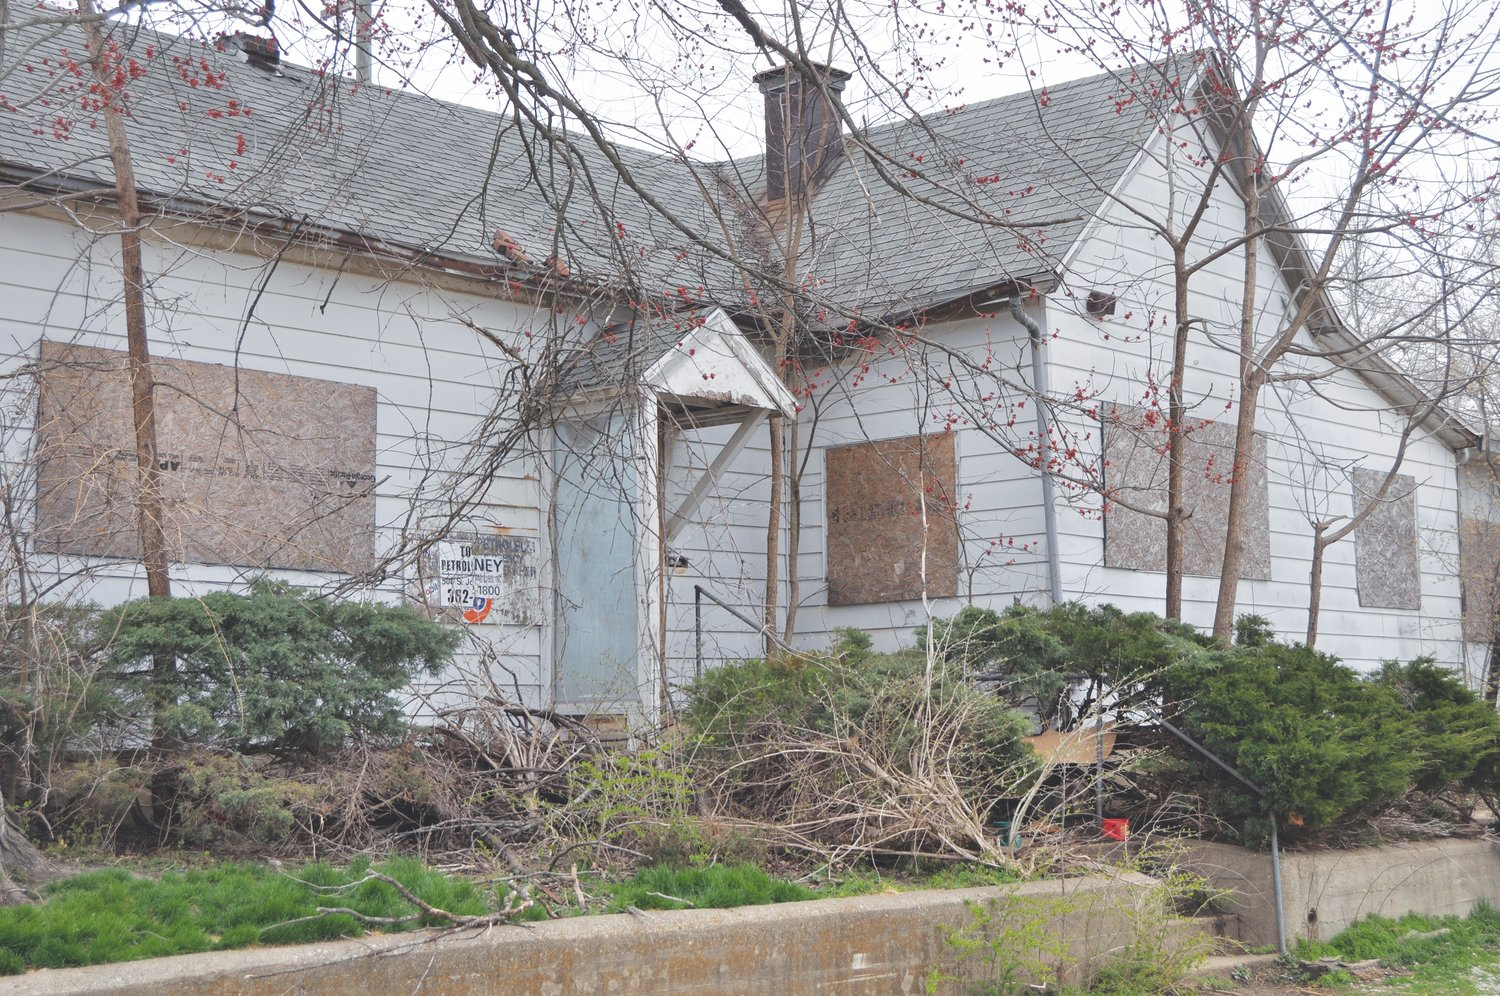 The former Toney Petroleum building is shown here Thursday. The Crawfordsville Street Depatment will re-board parts of the building following complaints about stray cats on the site.